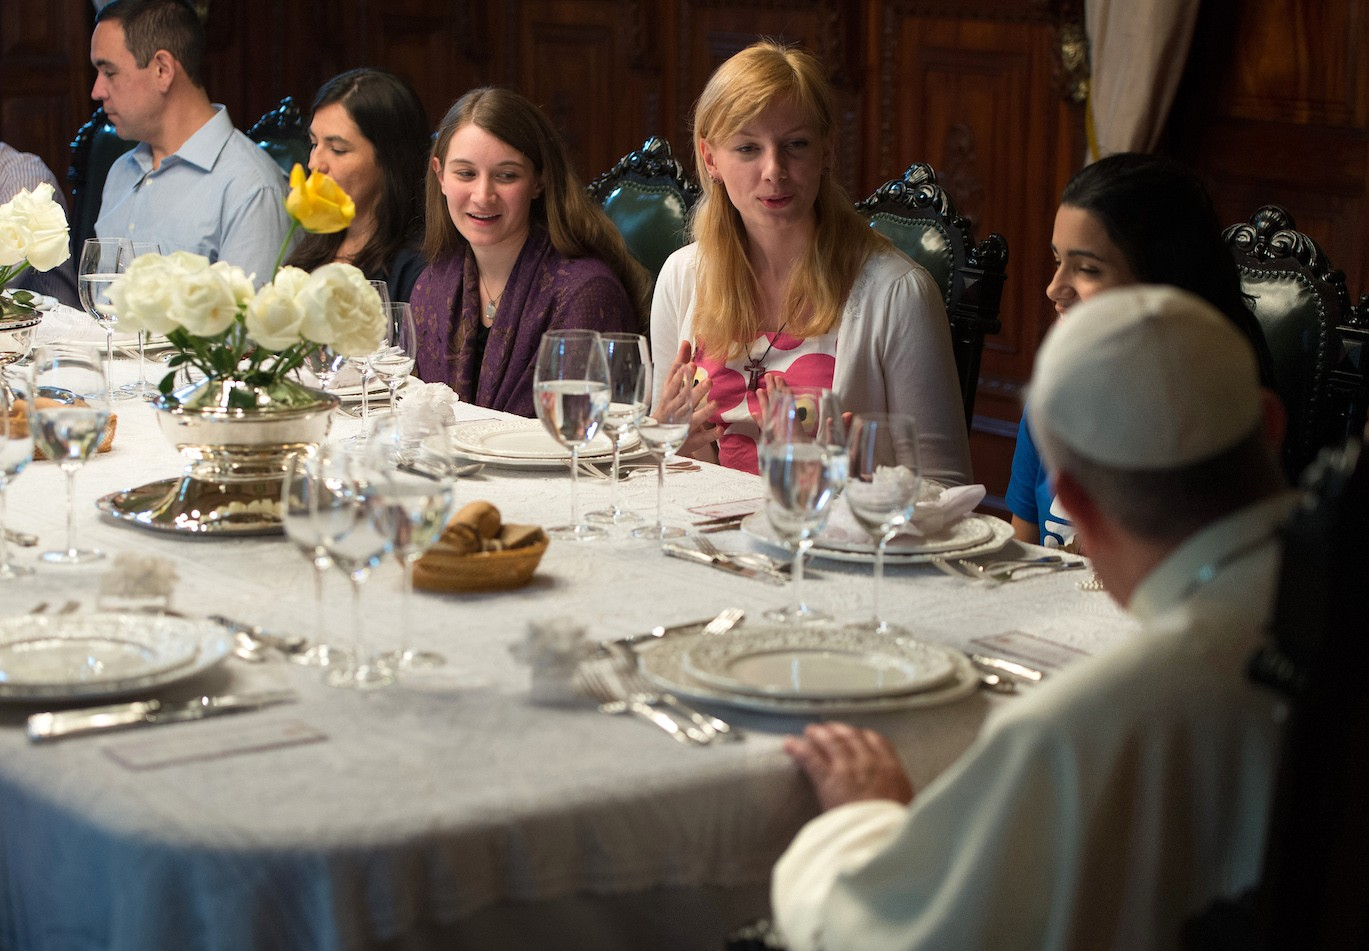 Pope Francis has dinner